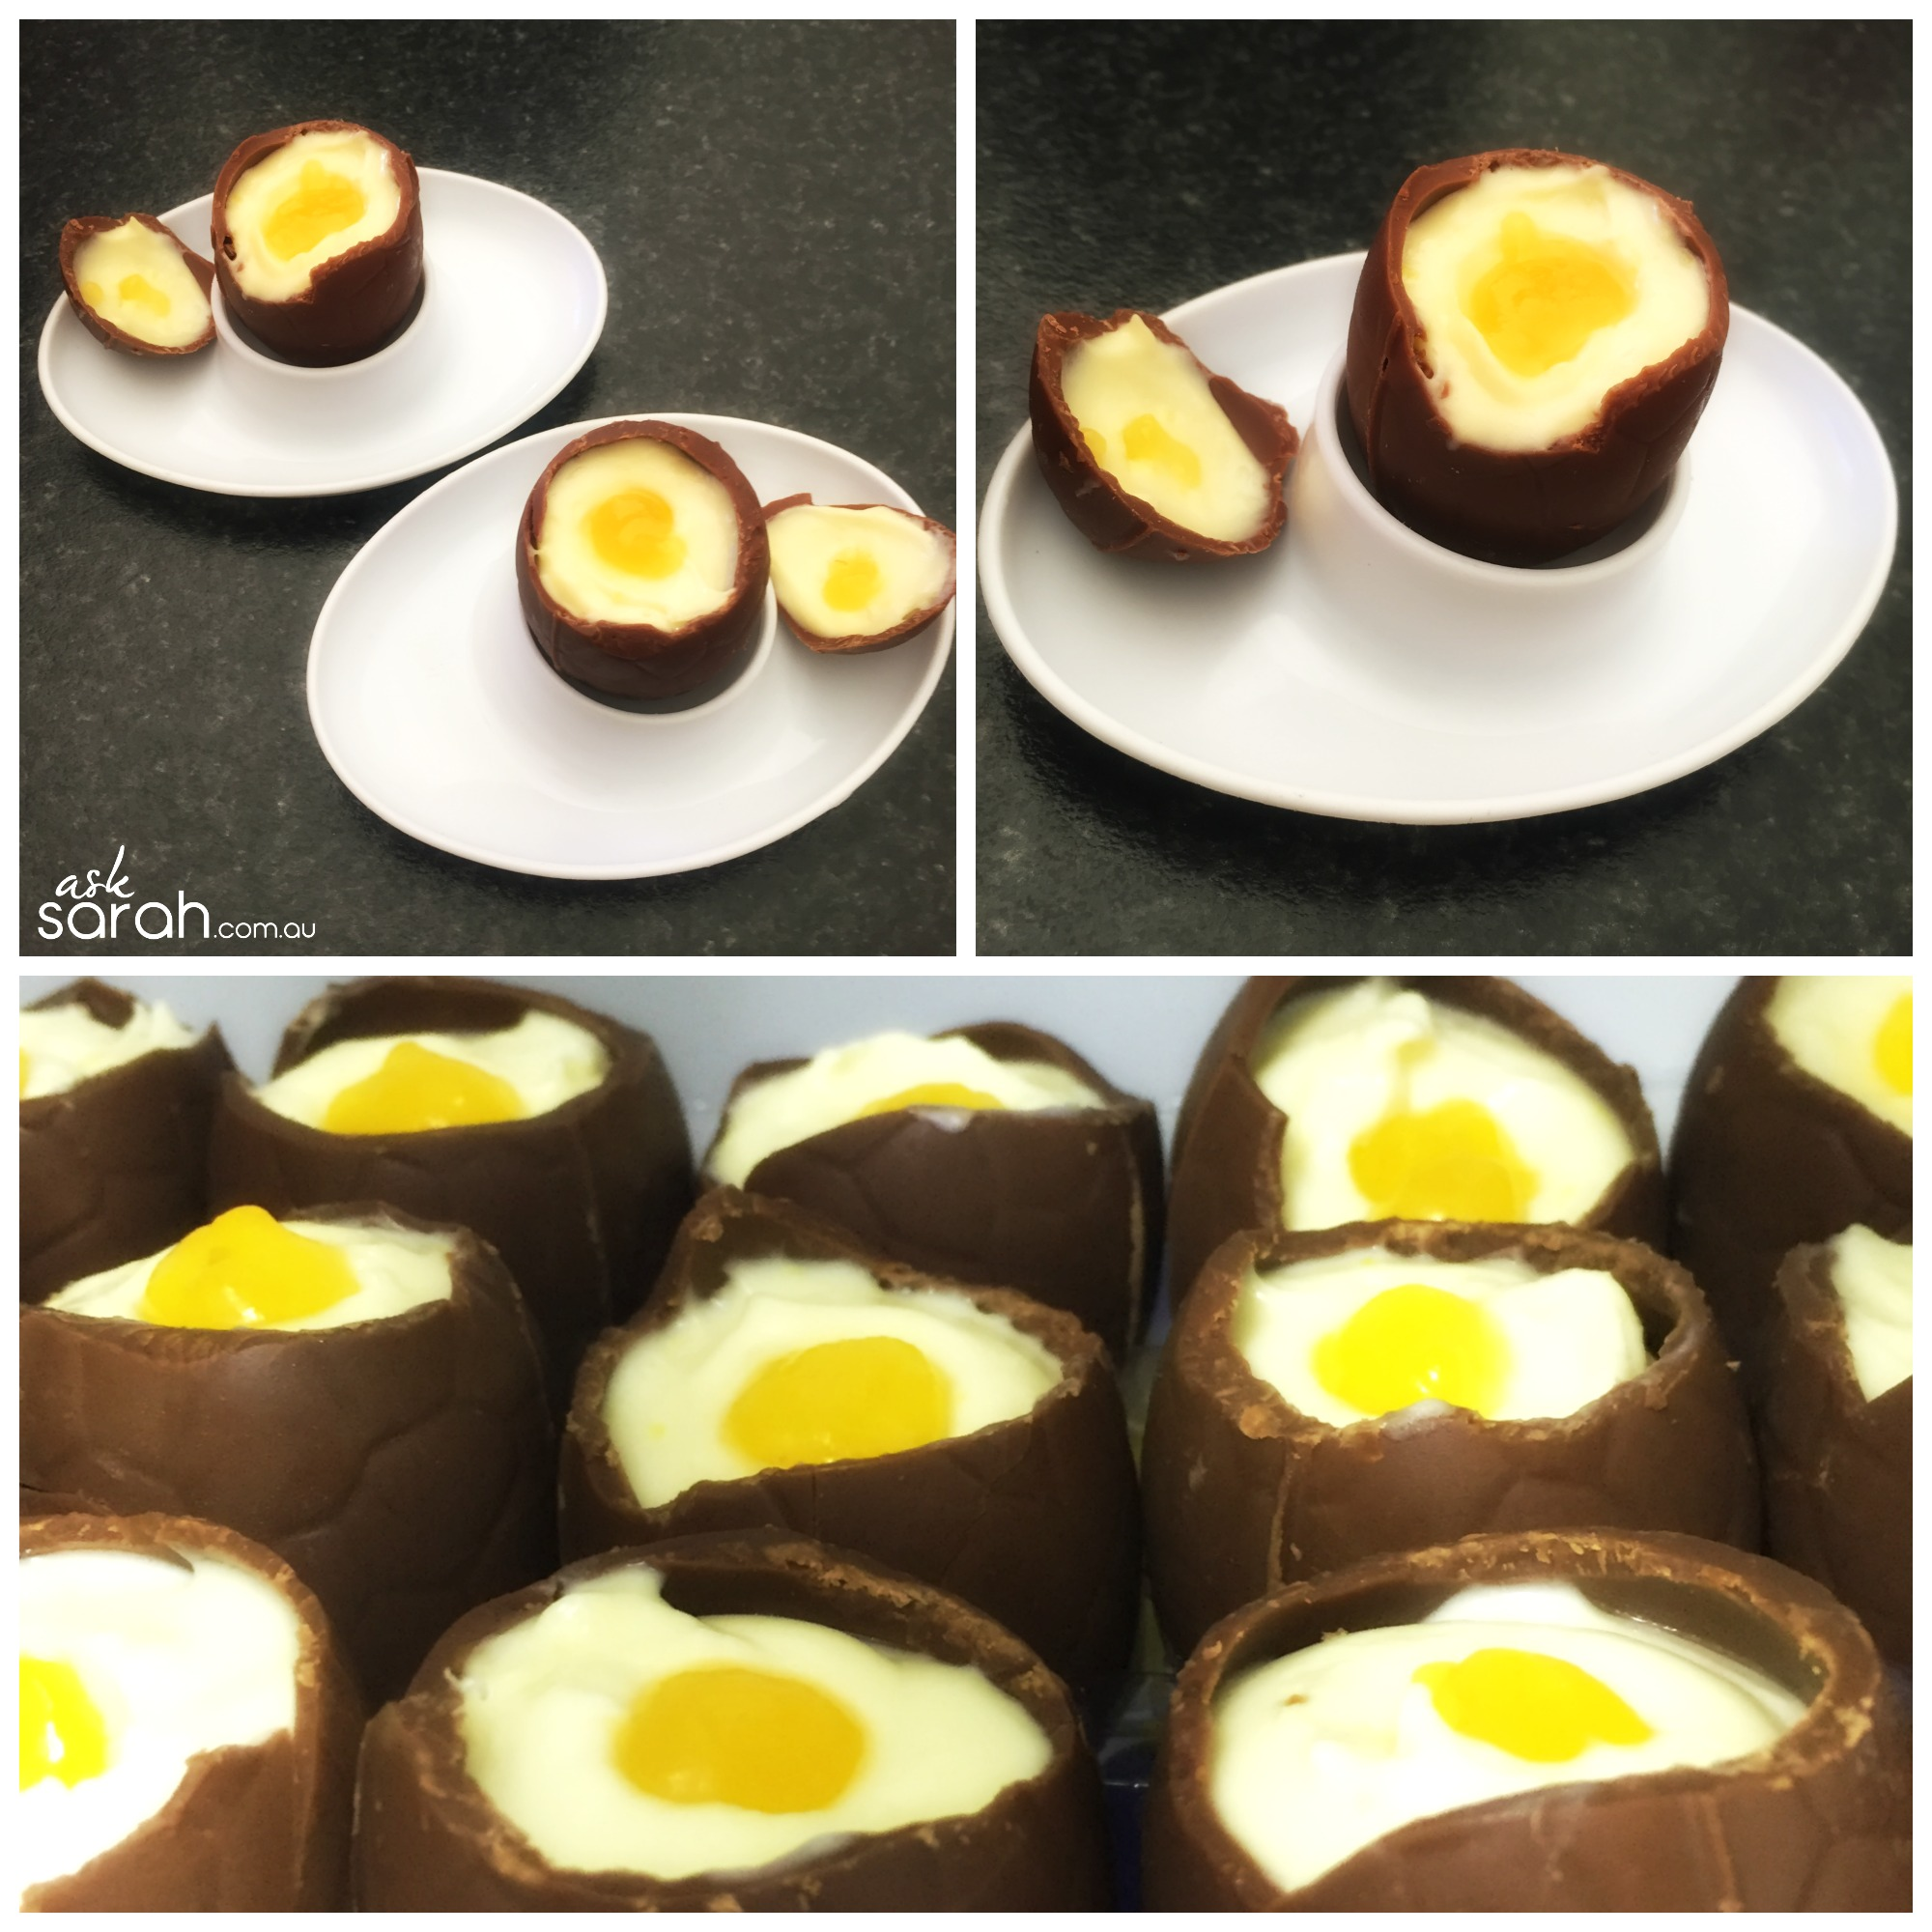 Recipe: Lemon Cheesecake Chocolate Easter Eggs {Only 5 Ingredients & Easy Too!}